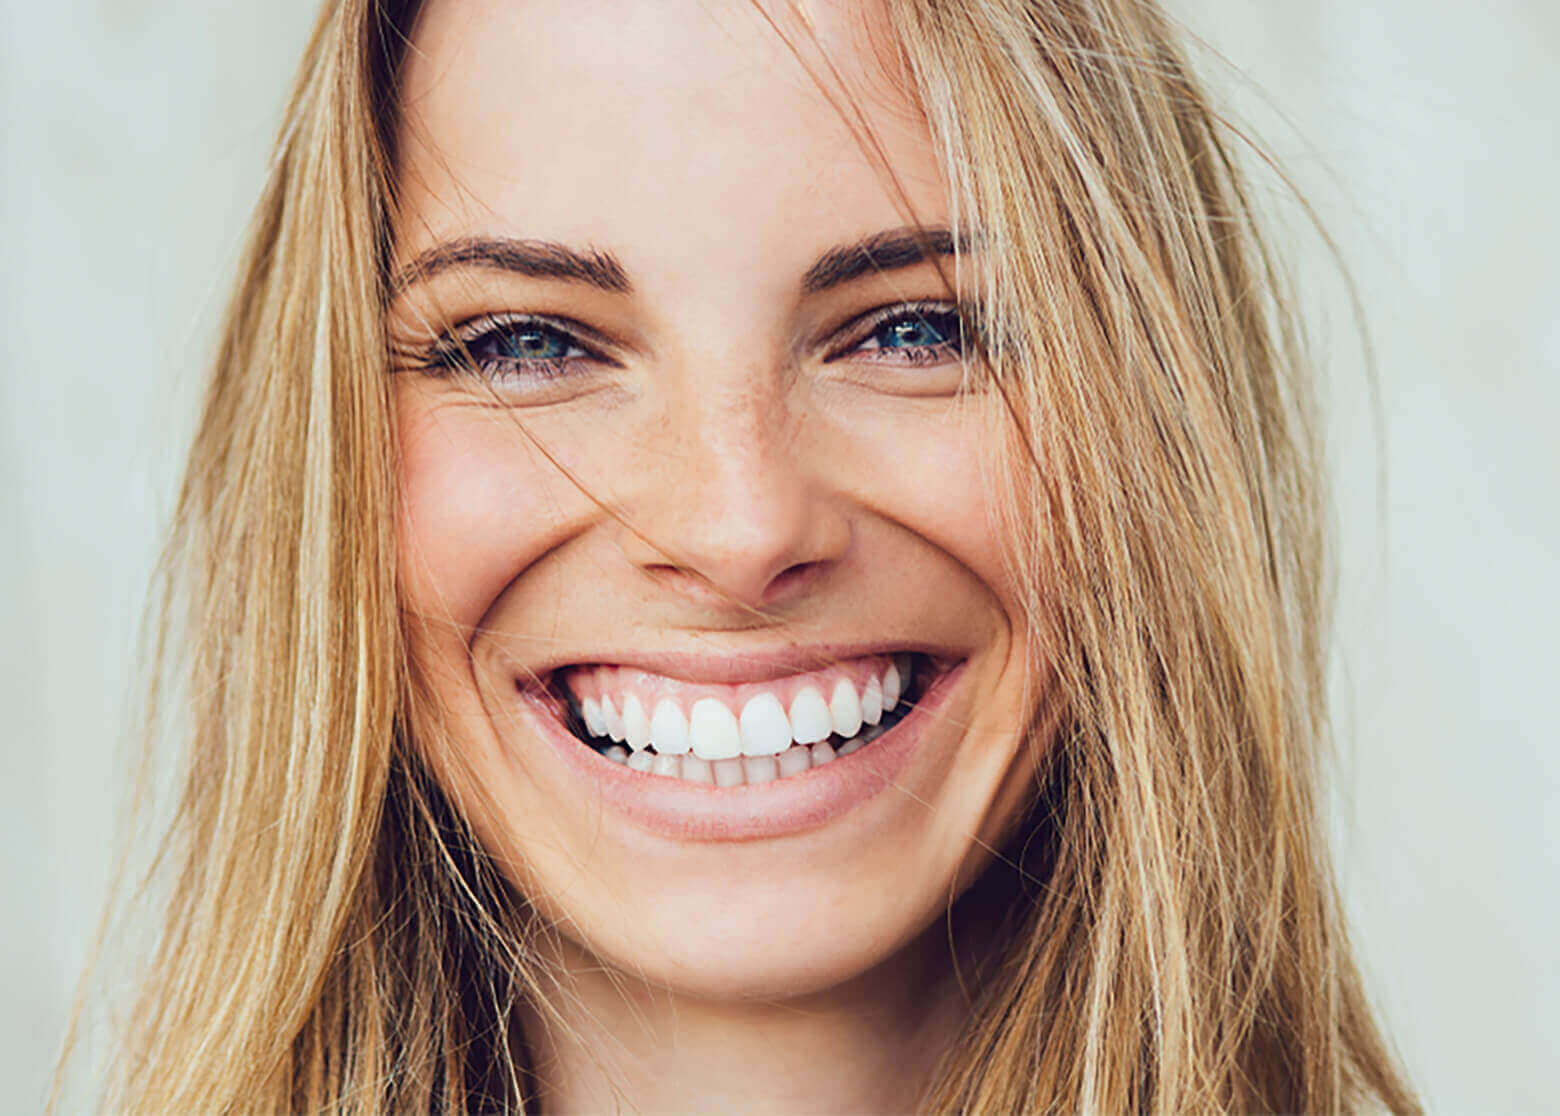 Blonde woman with white teeth smiling.